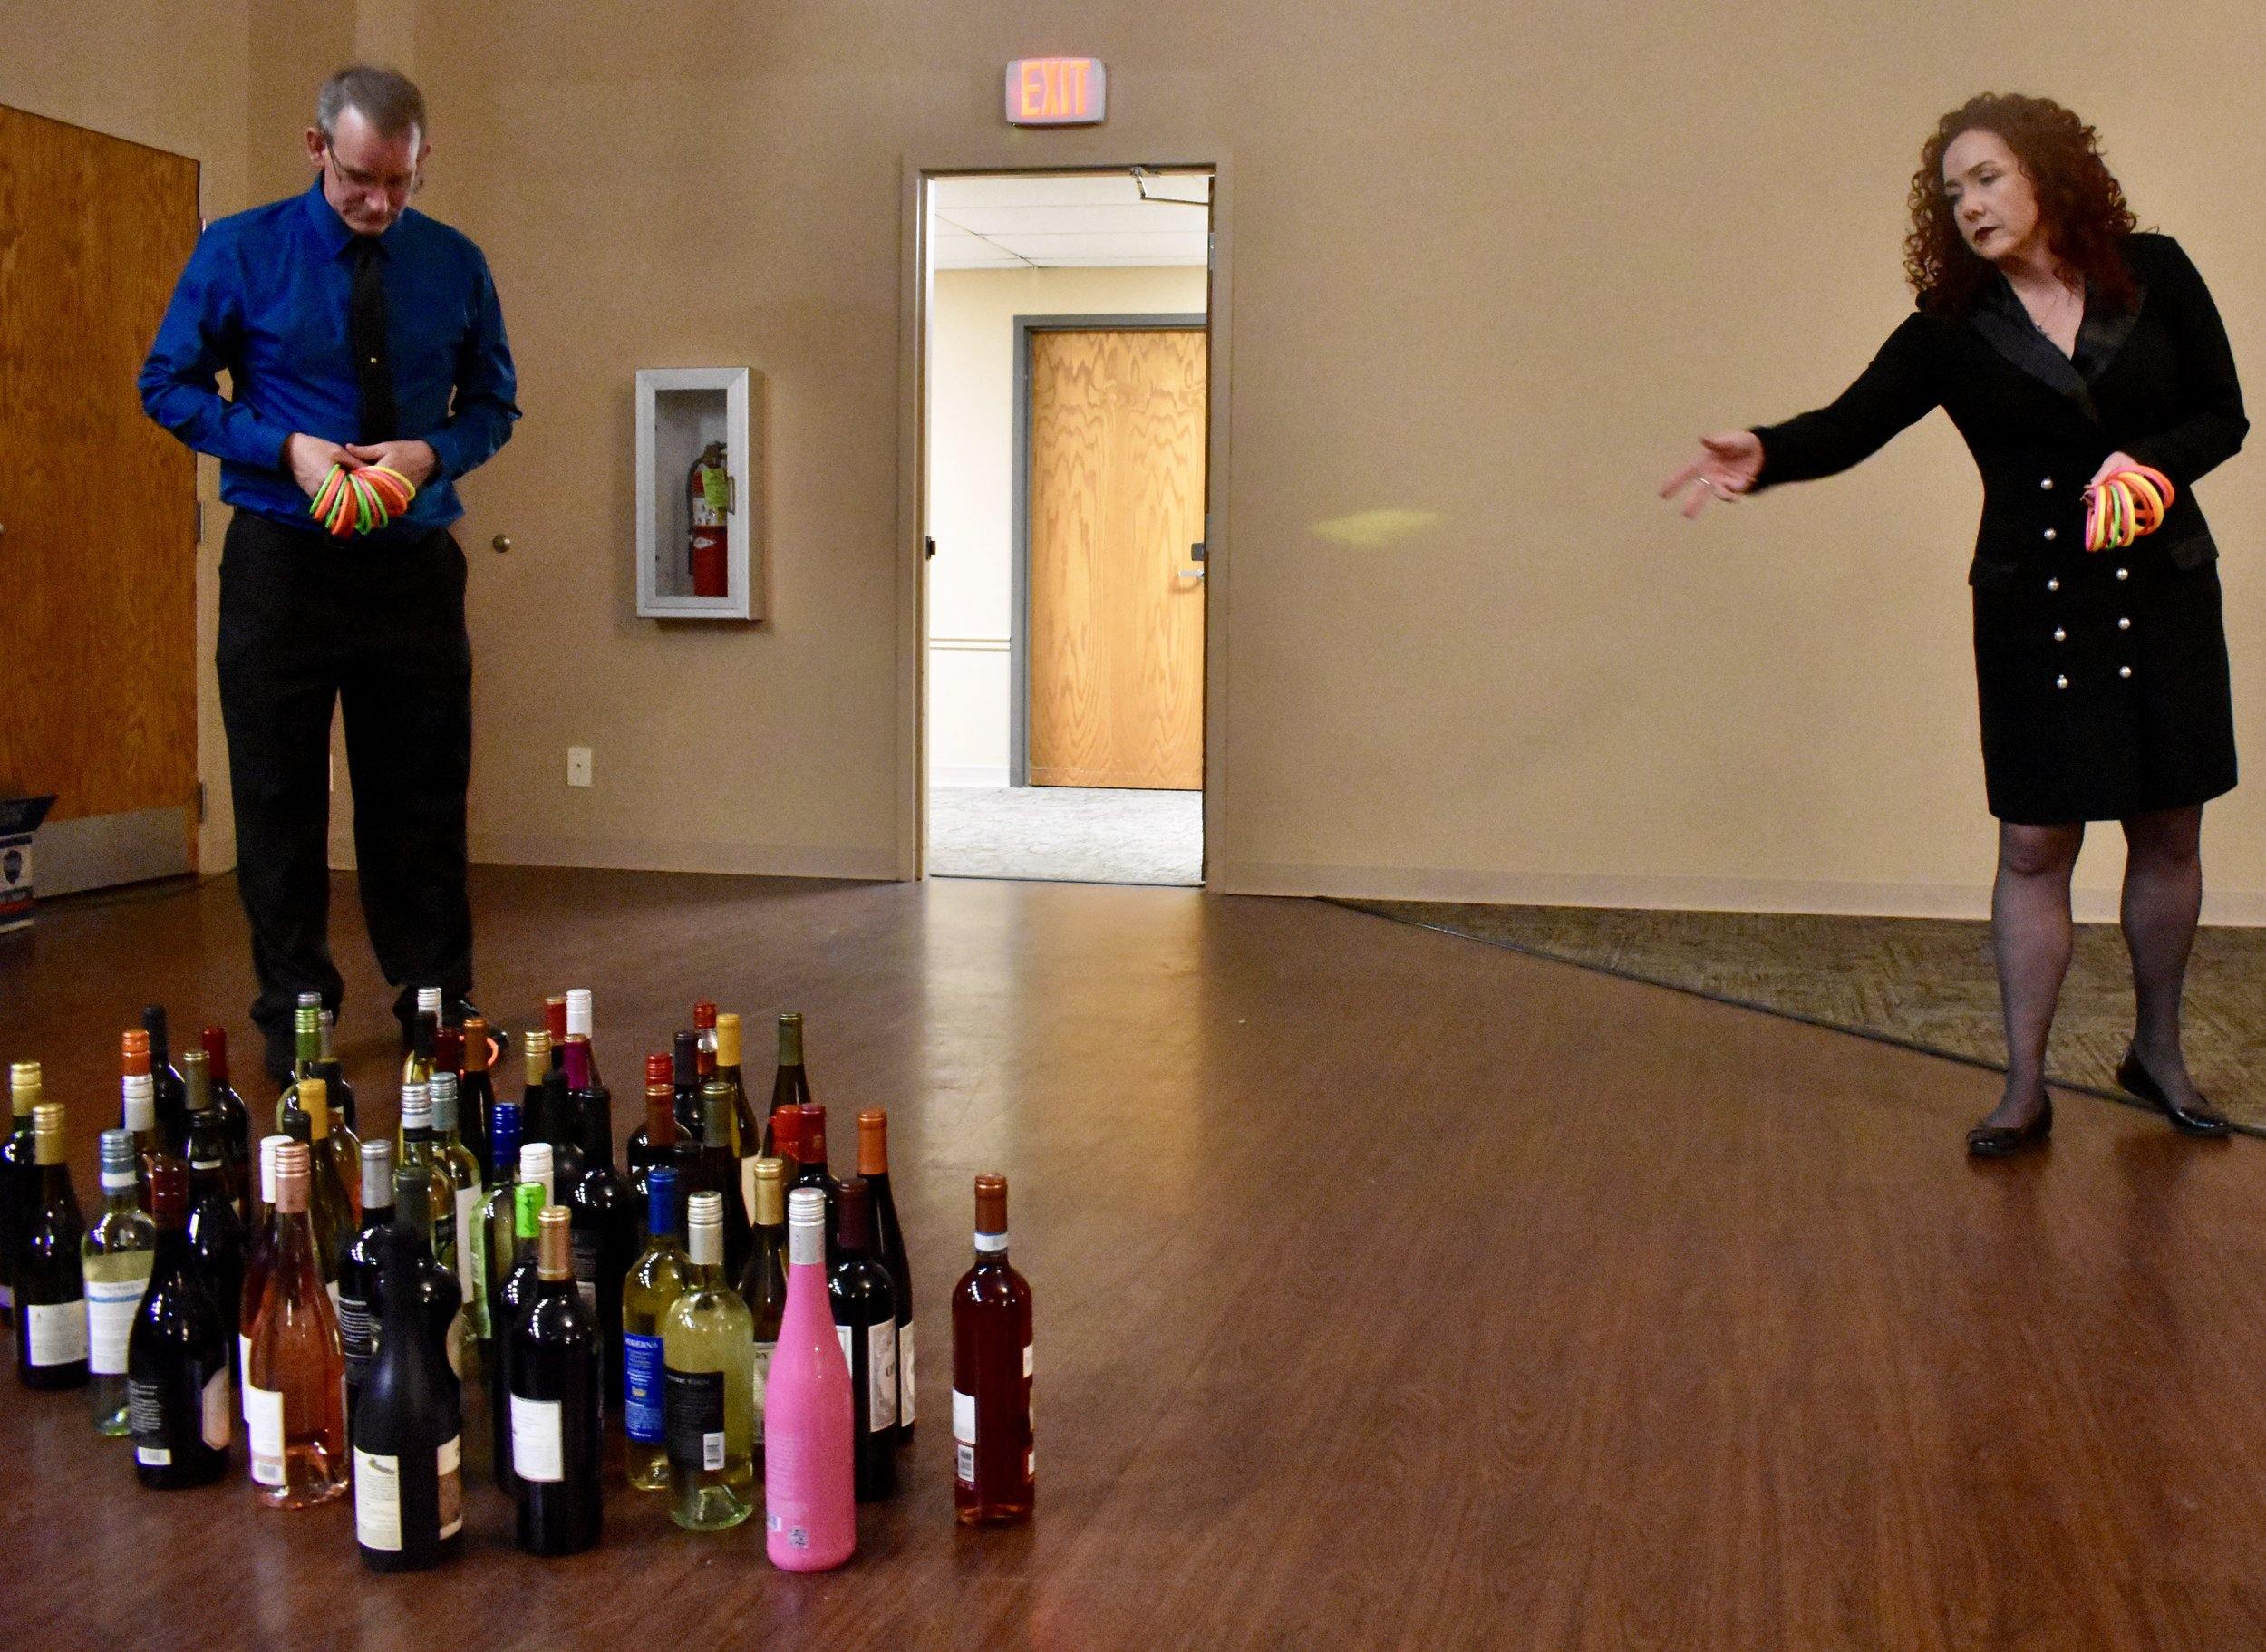 WINE TOSS WAS A HUGE SUCCESS! 5 TOSSES= $10 // 12 TOSSES+ $20. YOU WIN THE BOTTLE YOU LAND ON! LAND ON MULTIPLE? YOU PICK YOUR FAVORITE!